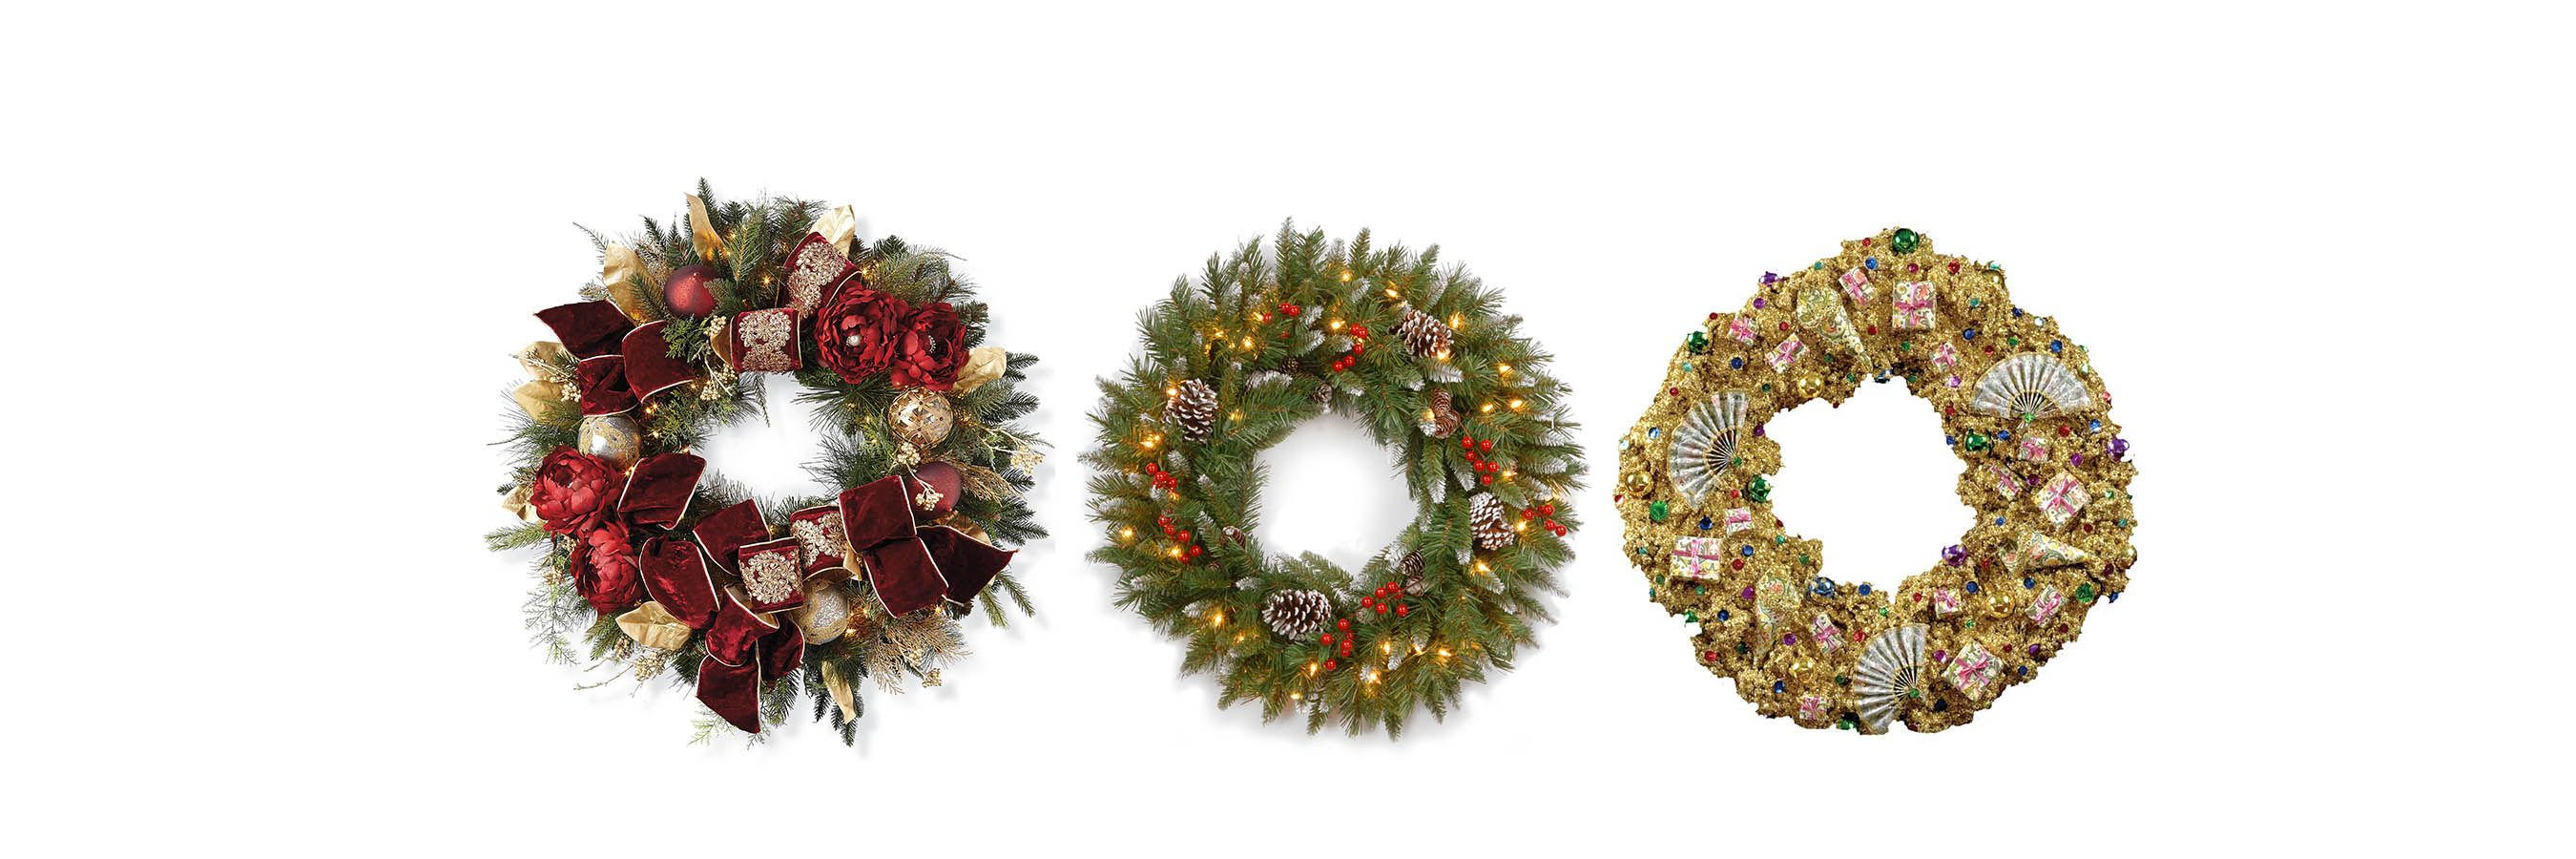 60 Best Christmas Door Wreath Ideas 2017 - Decorating with Christmas ...